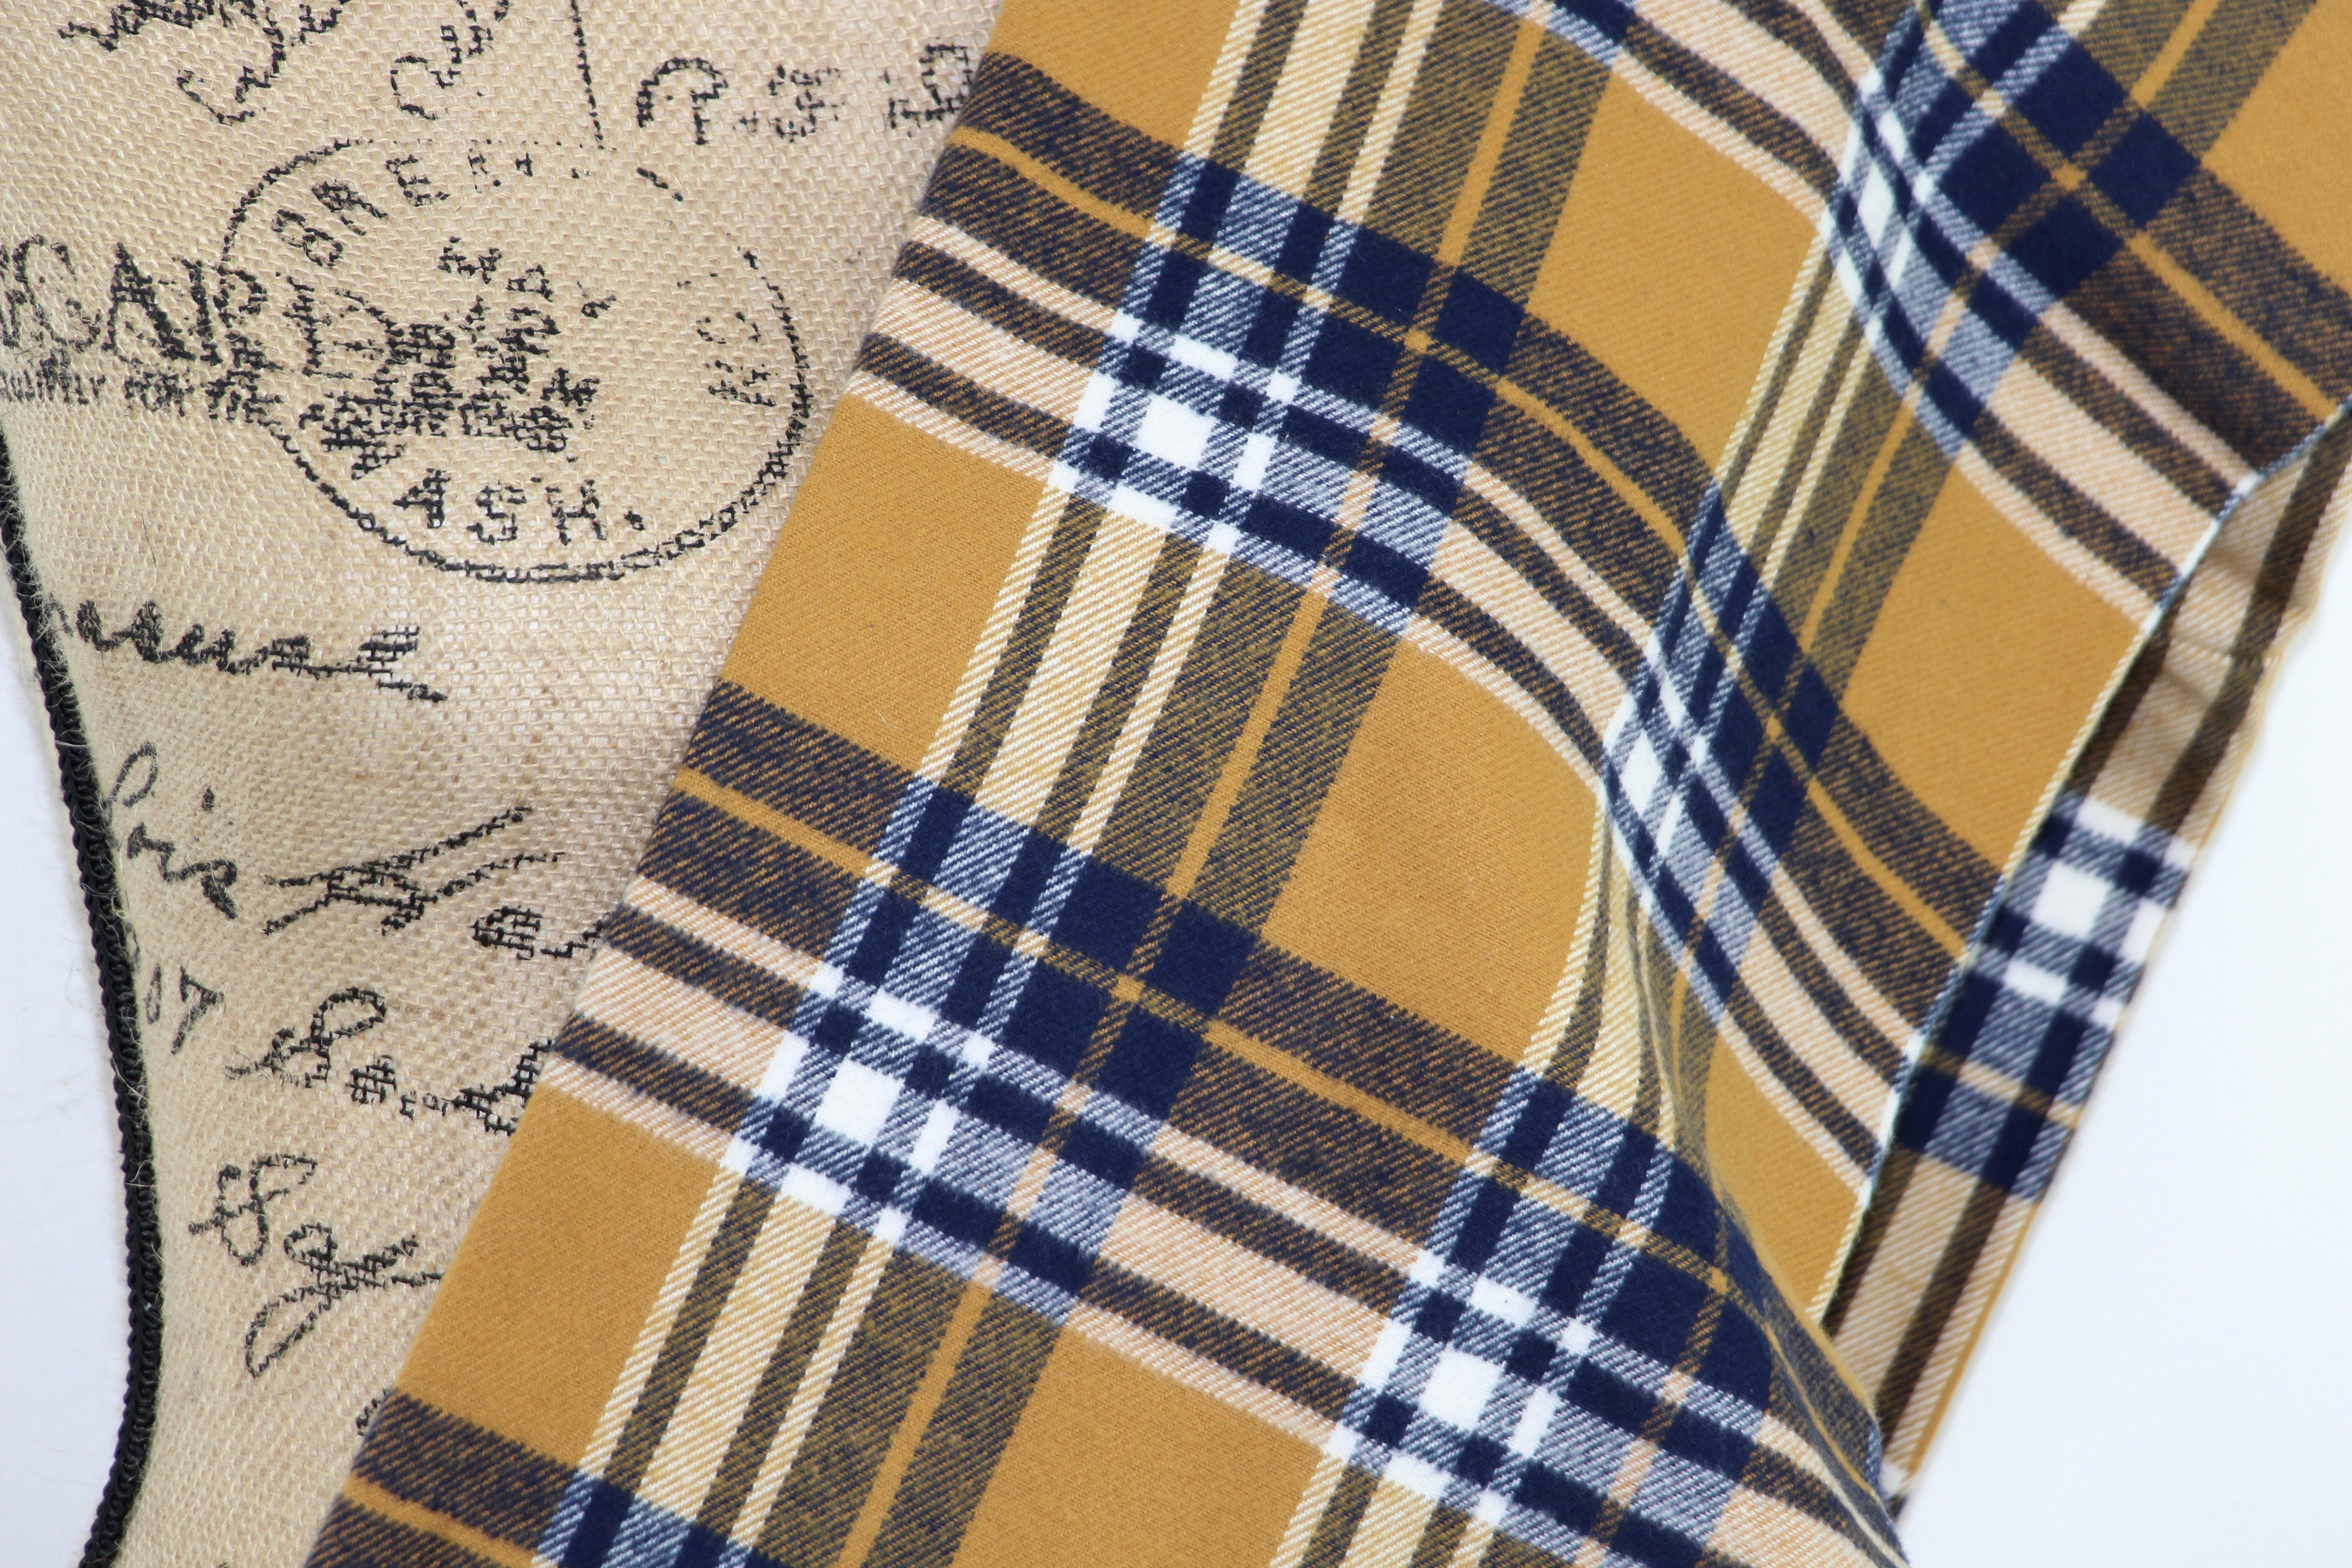 Mustard Yellow, Navy Blue, and White Flannel Plaid Infinity or Blanket Scarf